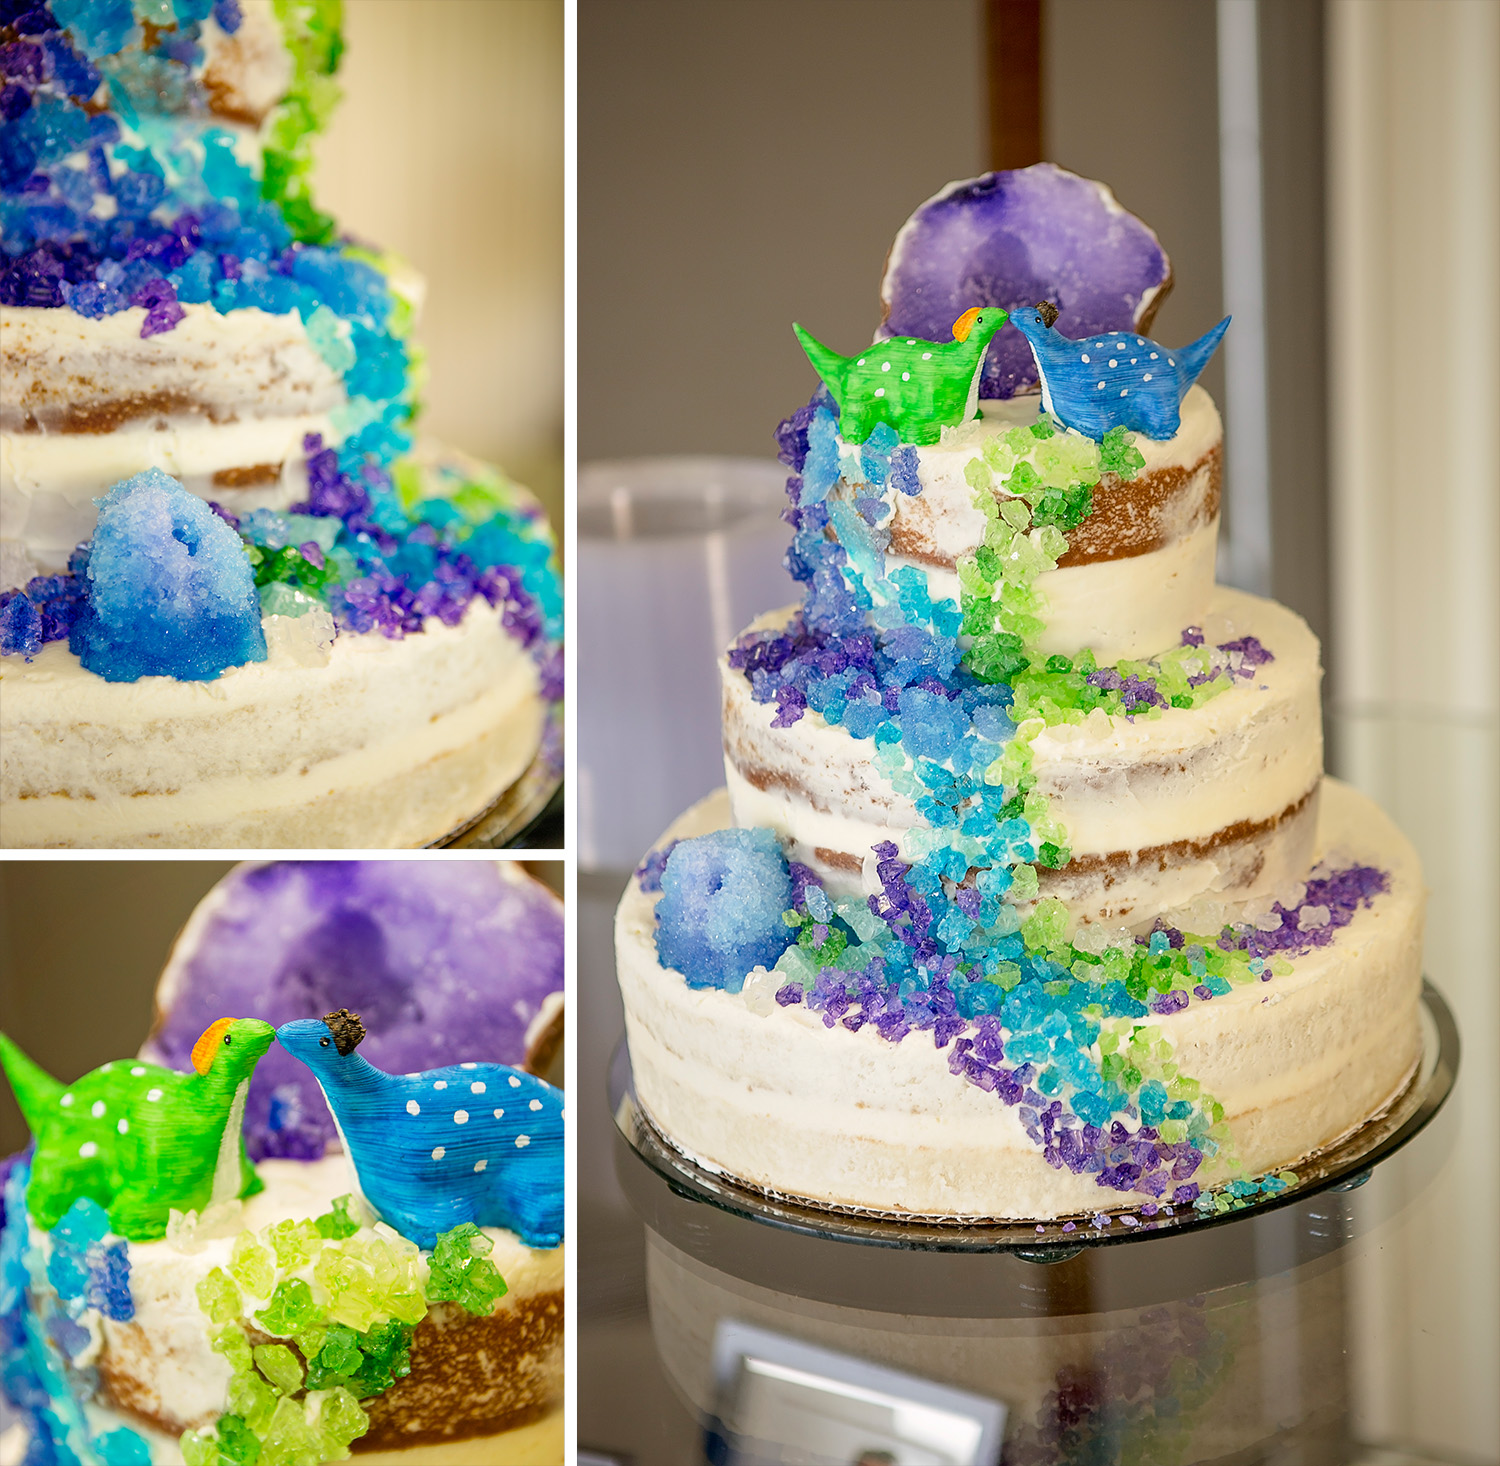 Geode wedding cake with dinosaur topper  at the Missouri Institute of Natural Science.